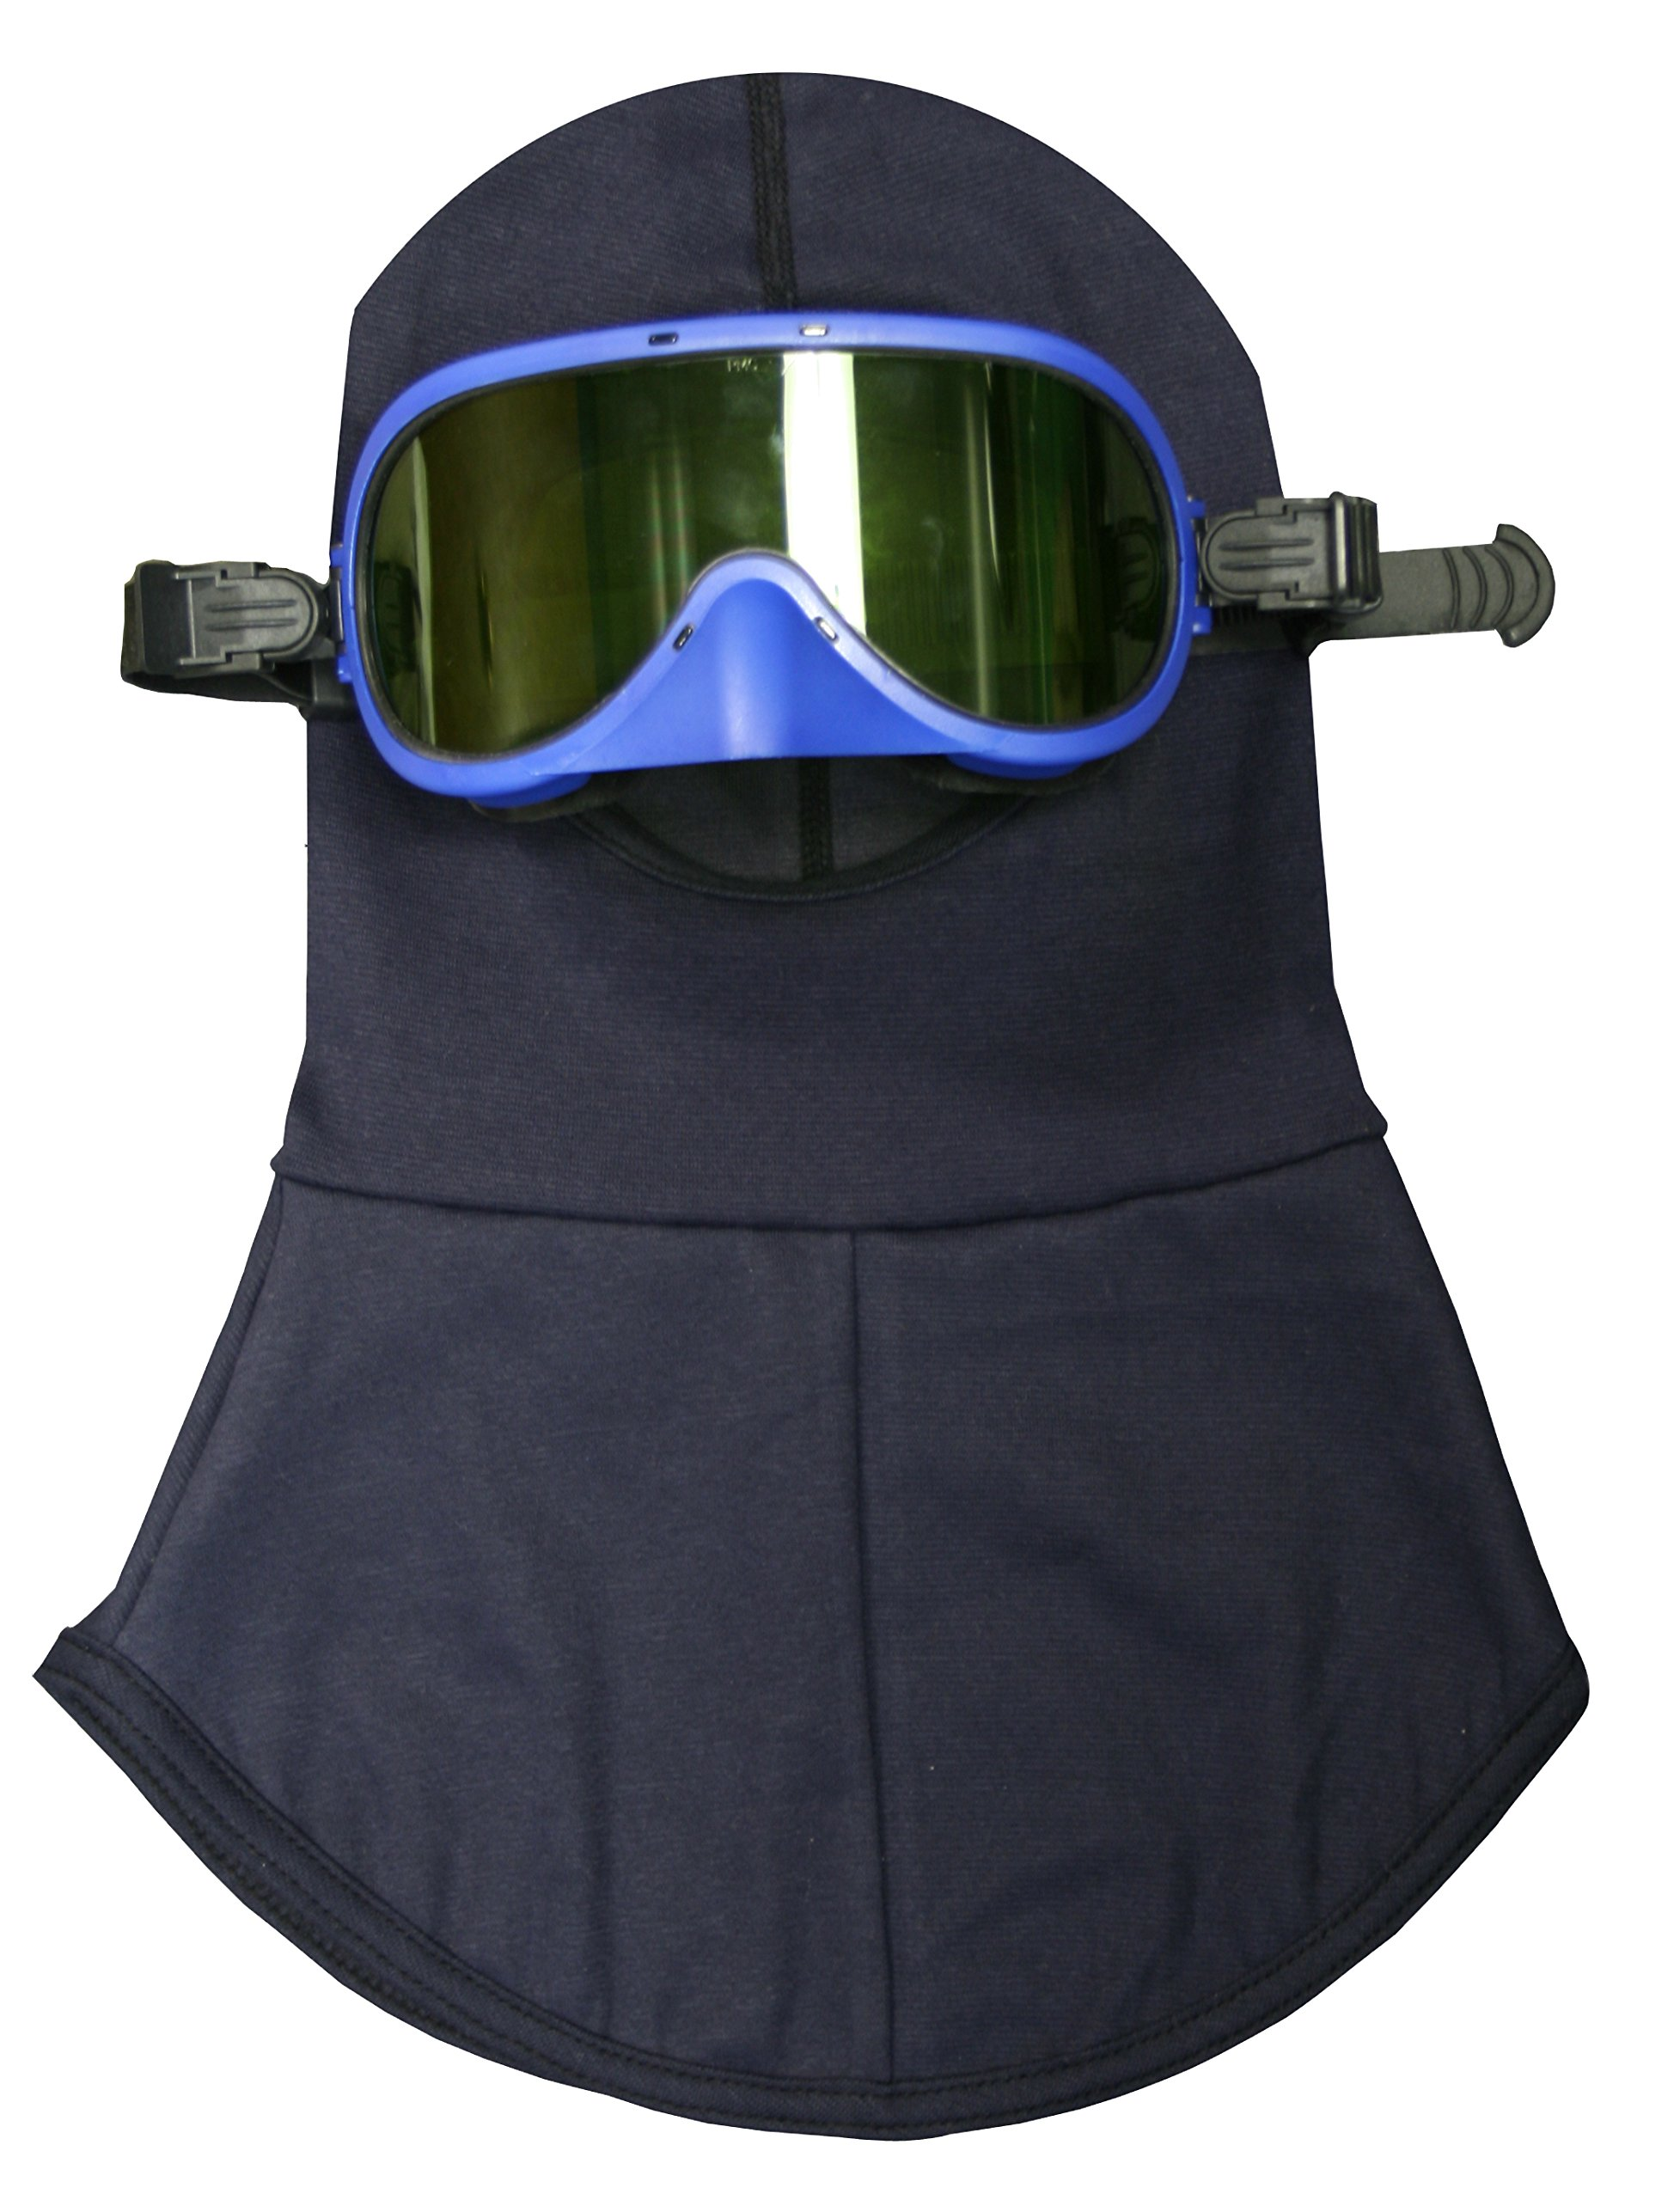 National Safety Apparel KITHP12GGL ArcGuard Arc Flash Goggle and Hood Combination, 12 Calorie, One Size